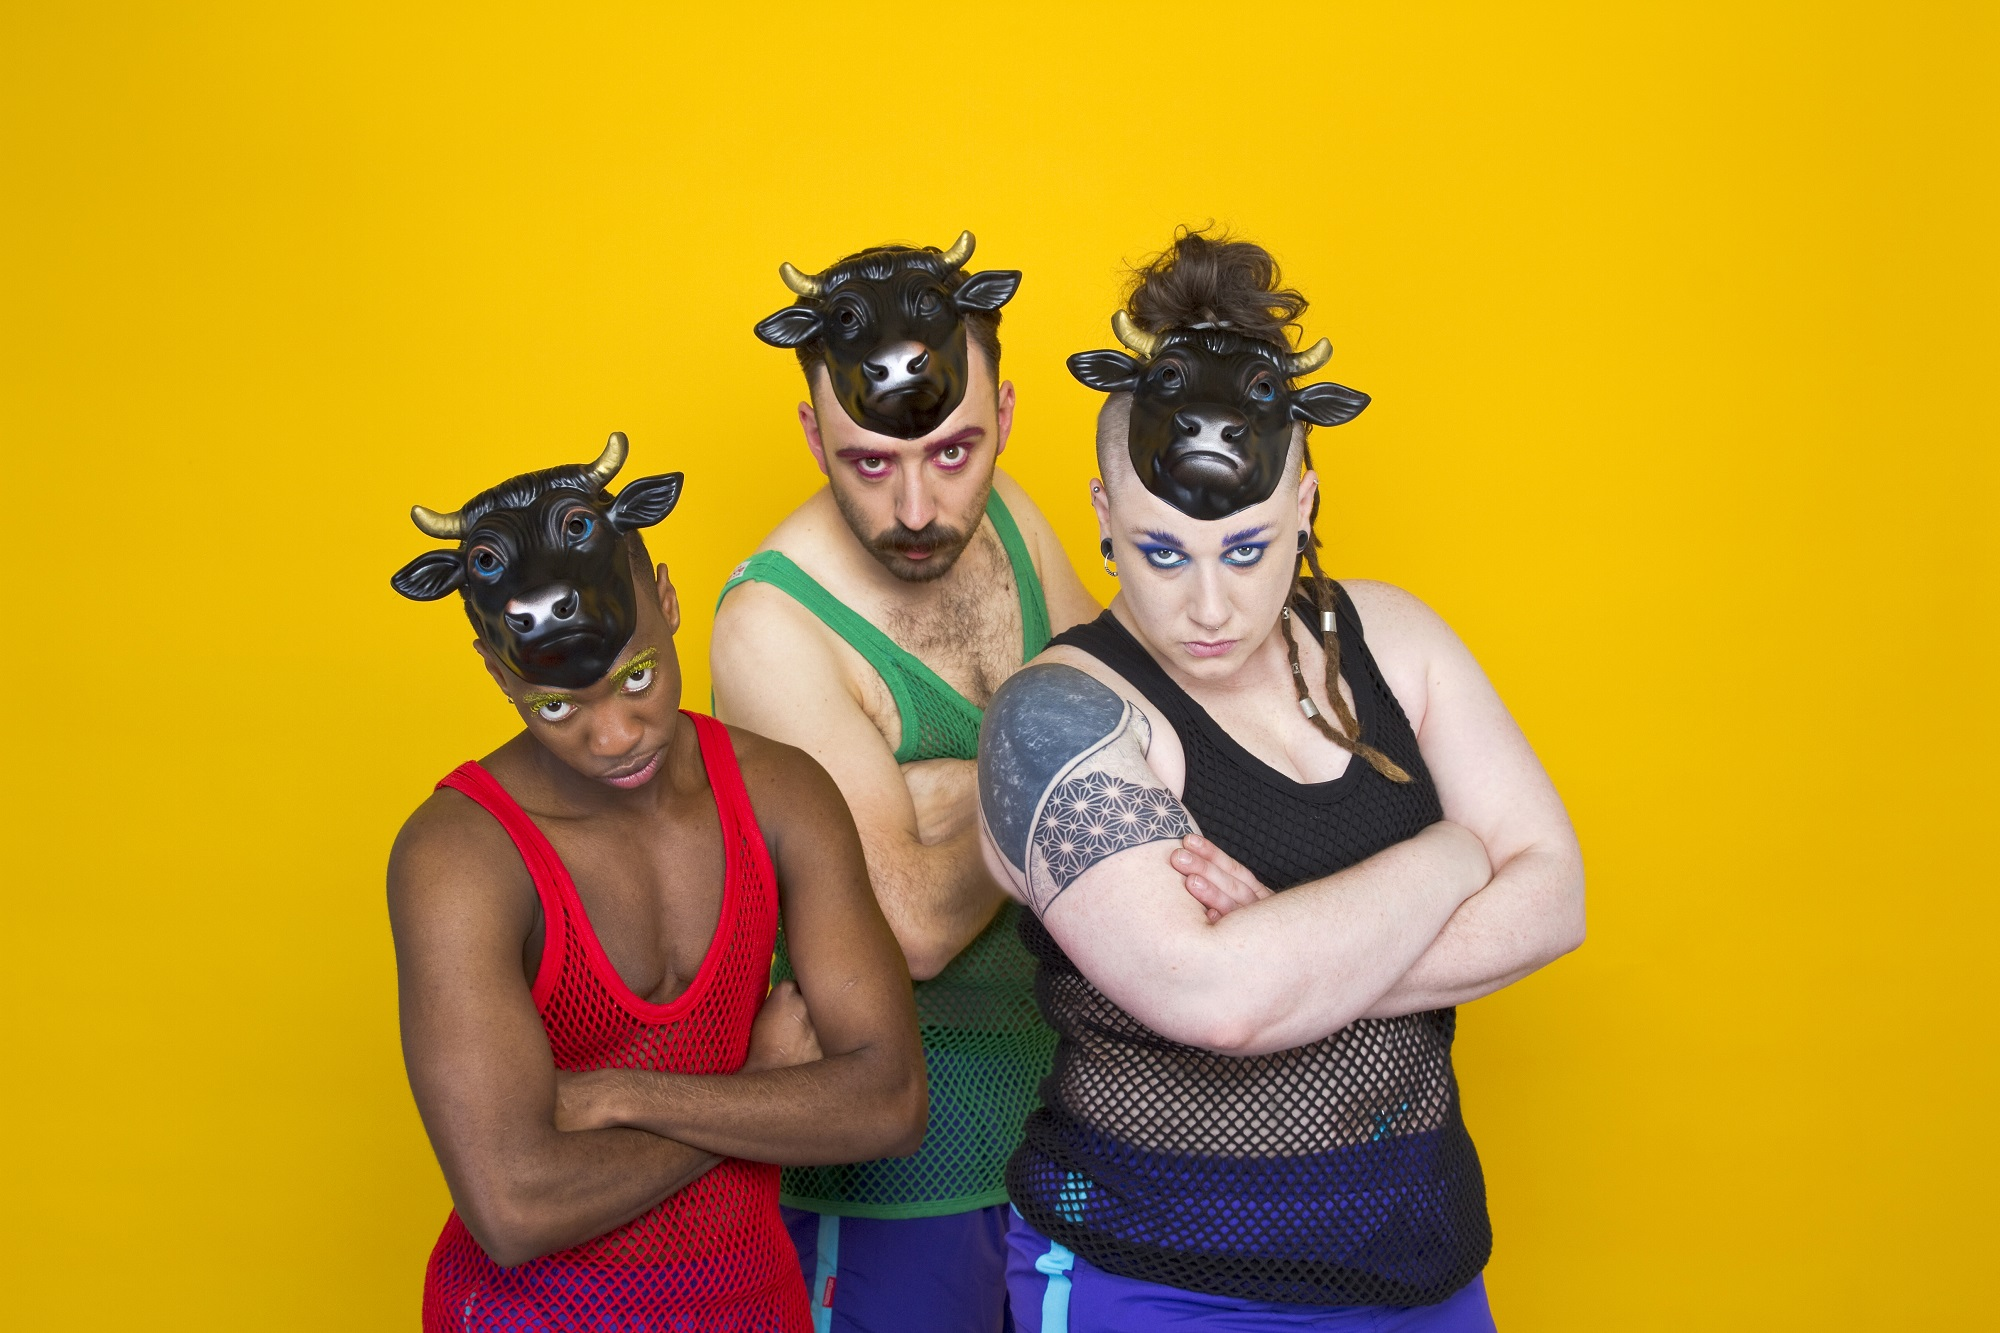 'Bullish' at Camden People's Theatre. Photo: Field & McGlynn